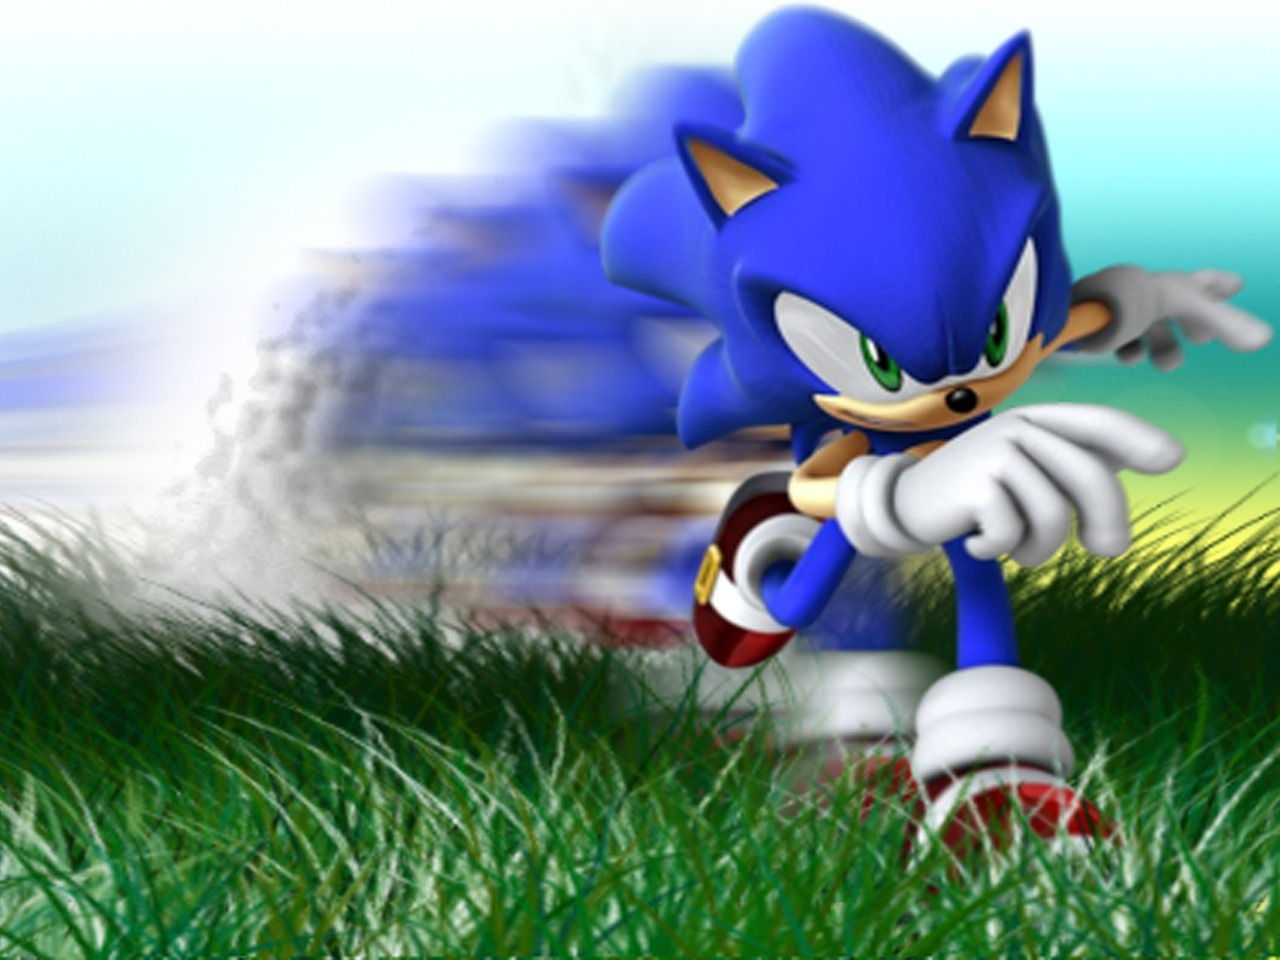 animated wallpaper anime,sonic the hedgehog,cartoon,animated cartoon,fictional character,grass